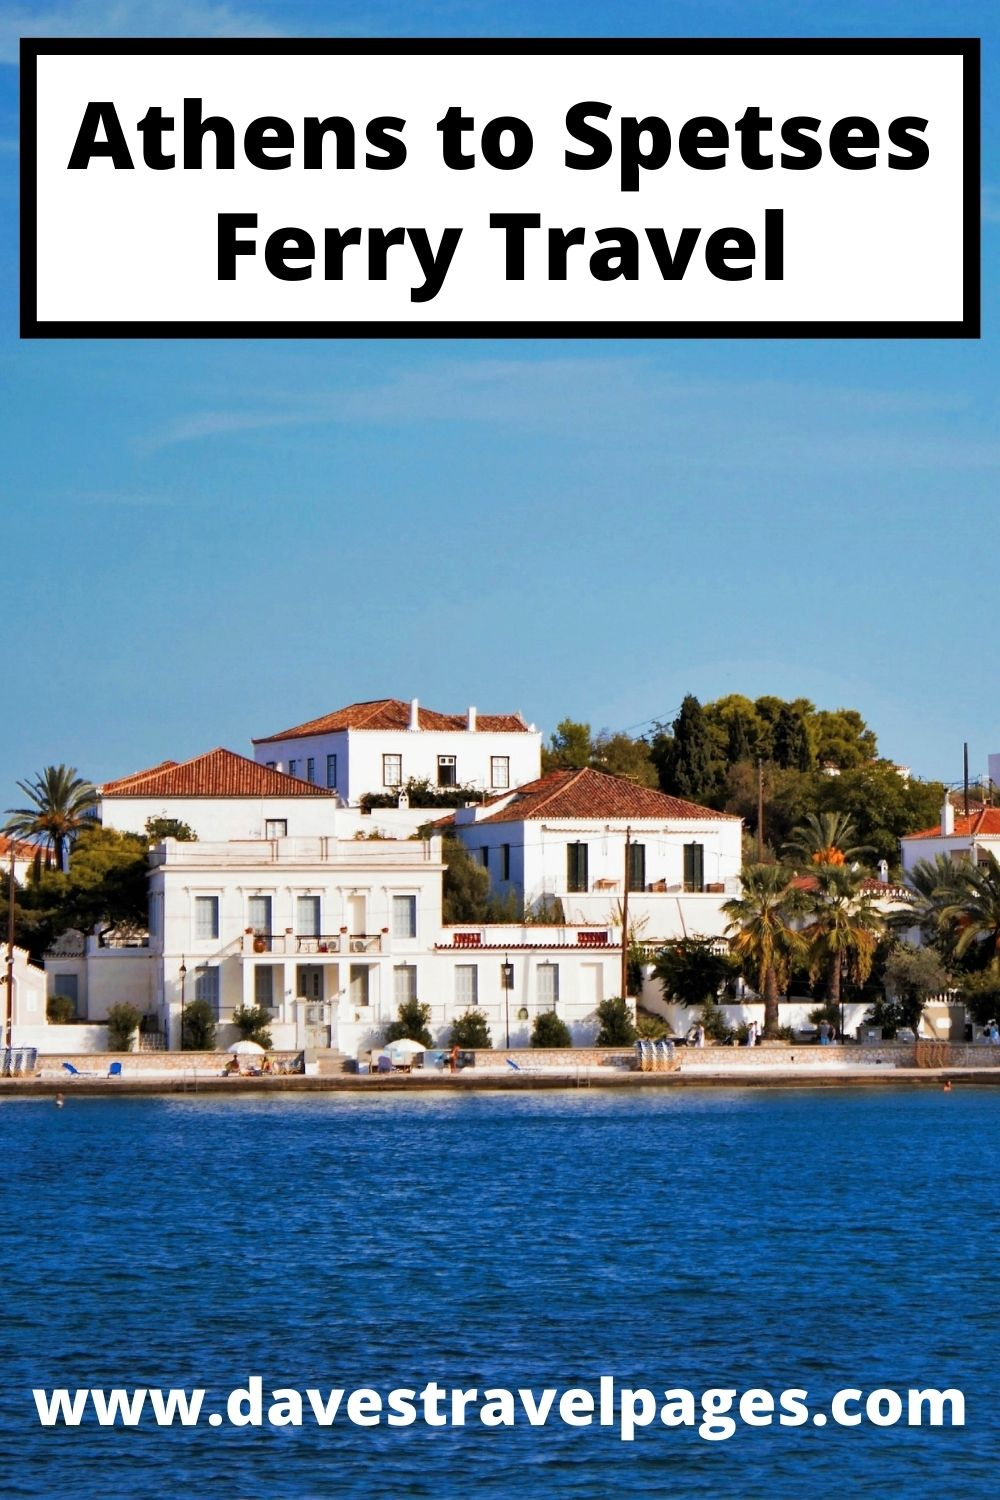 Athens to Spetses Ferry Travel Guide